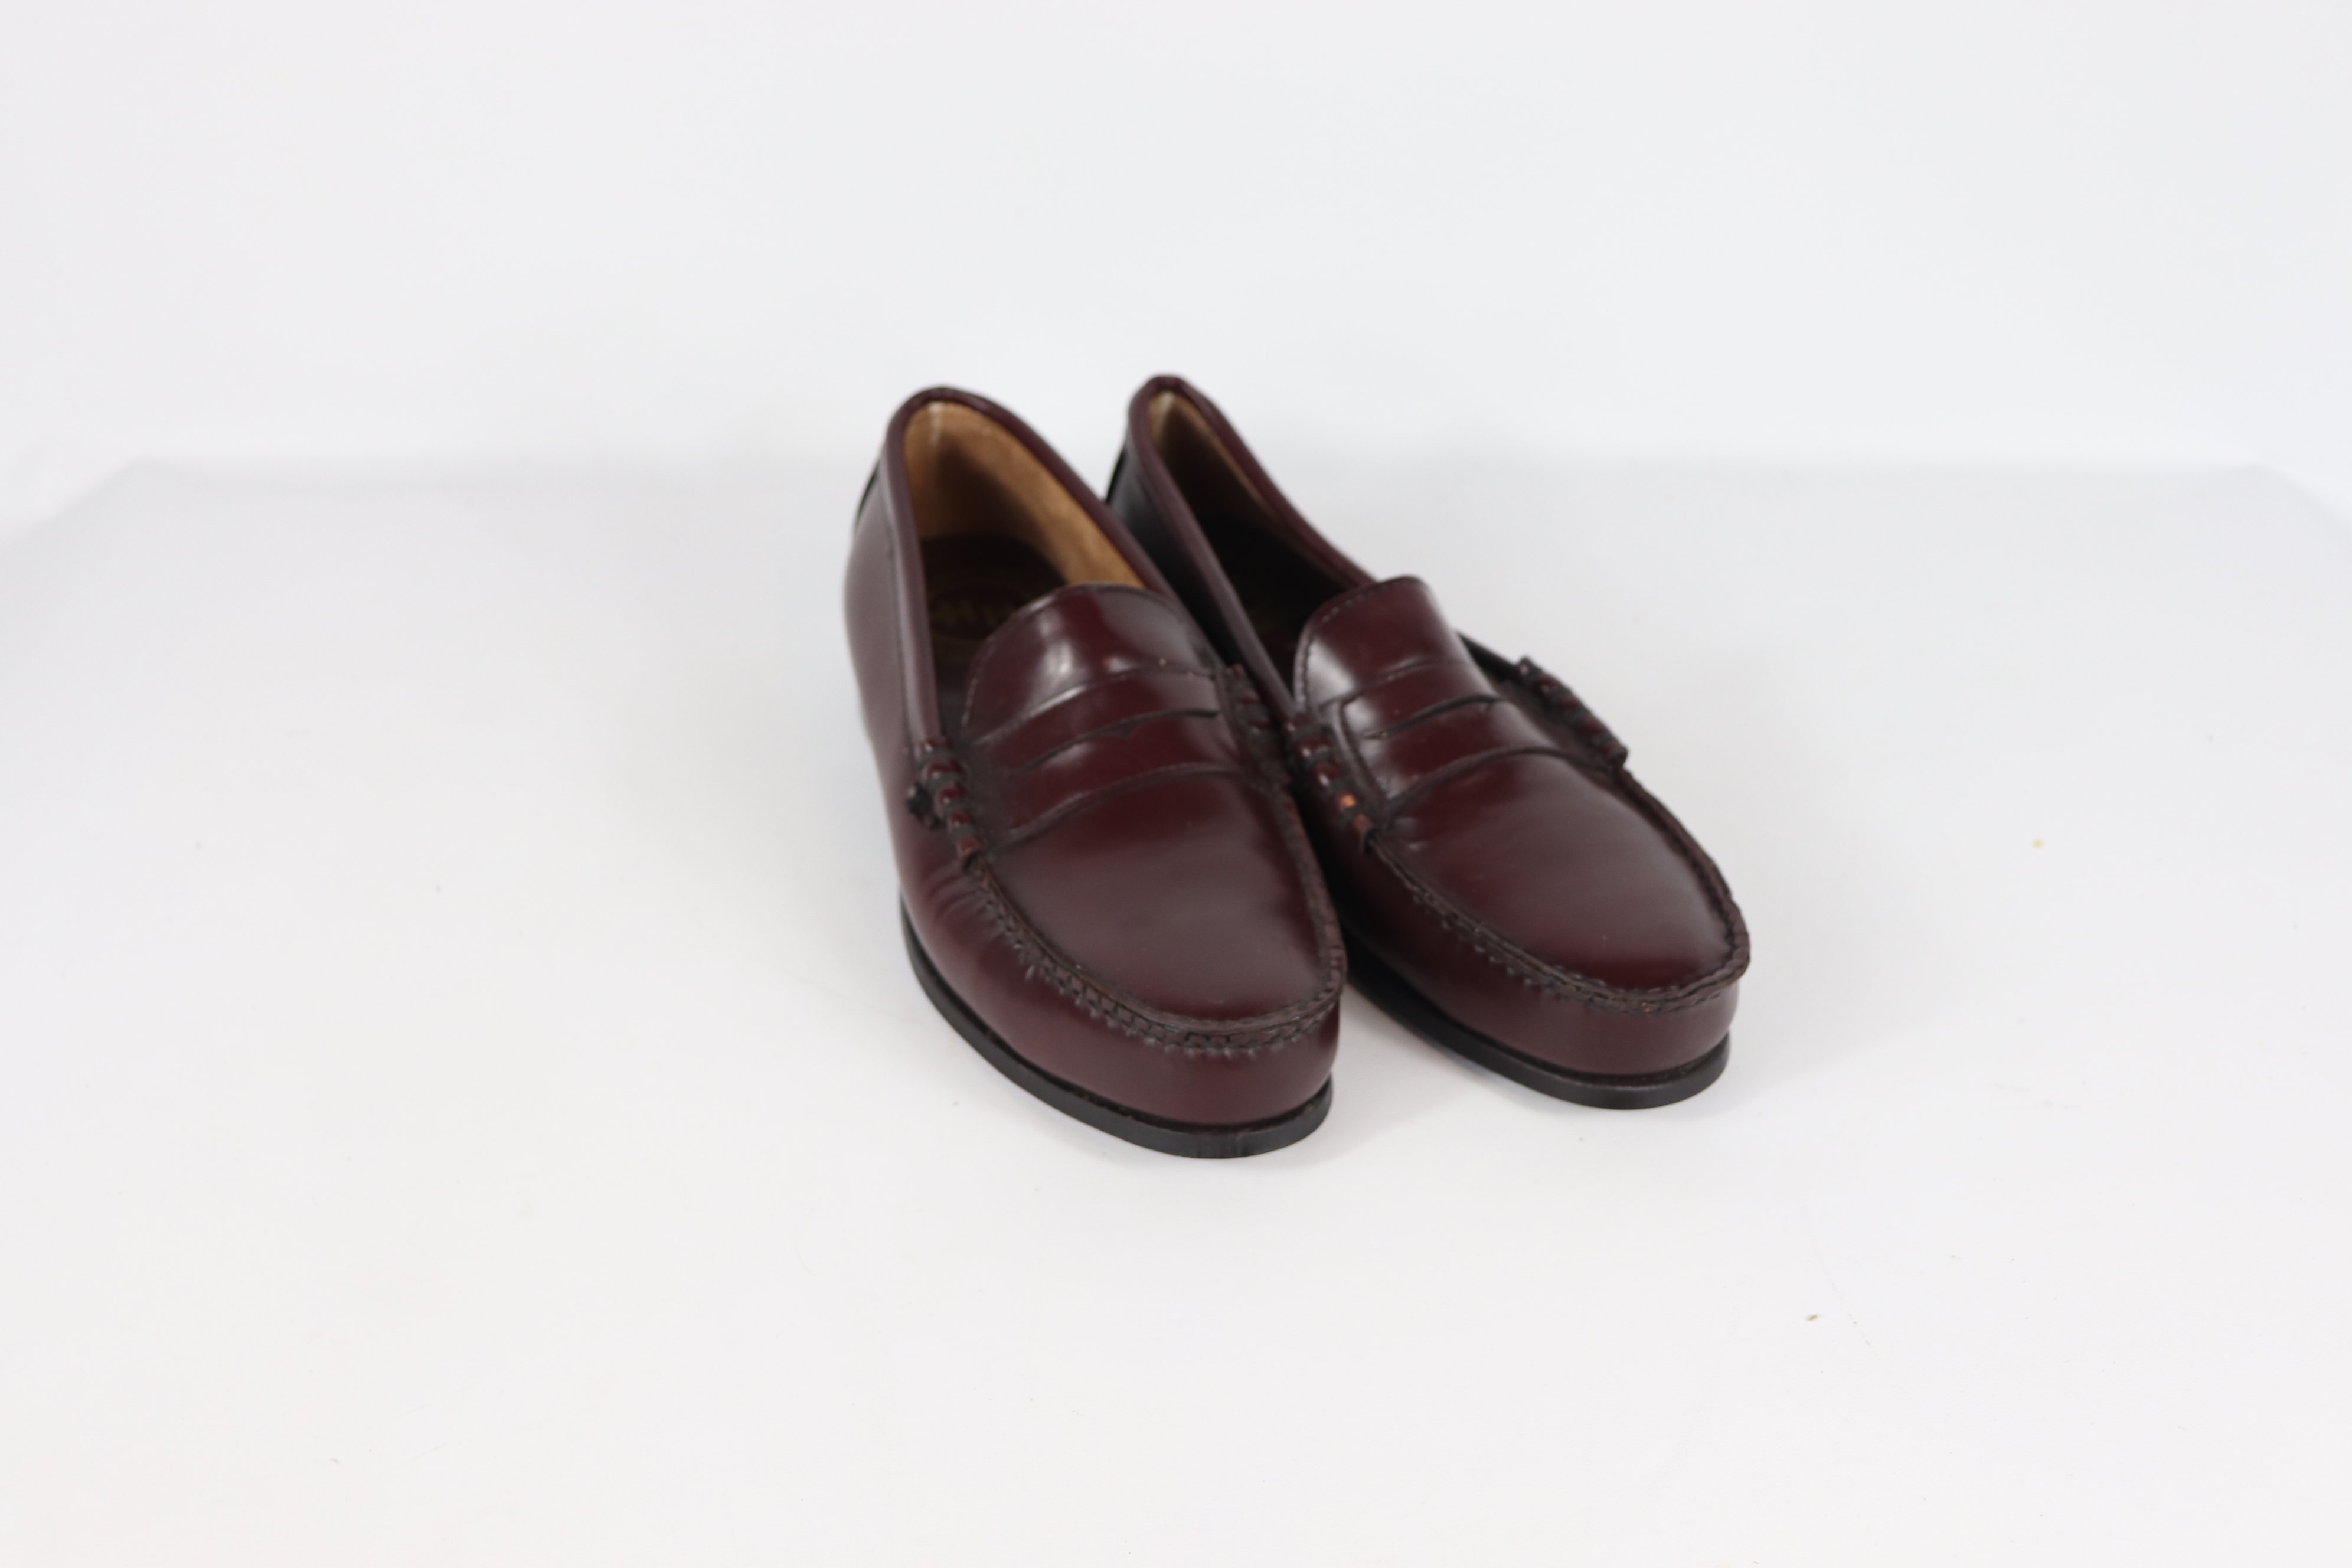 Vintage Steel Toe Shoes Steel Toe 90s New Double H Boots Mens 11.5 Leather Steel Toe Penny Loafers Dress Shoes Vintage Penny Loafers